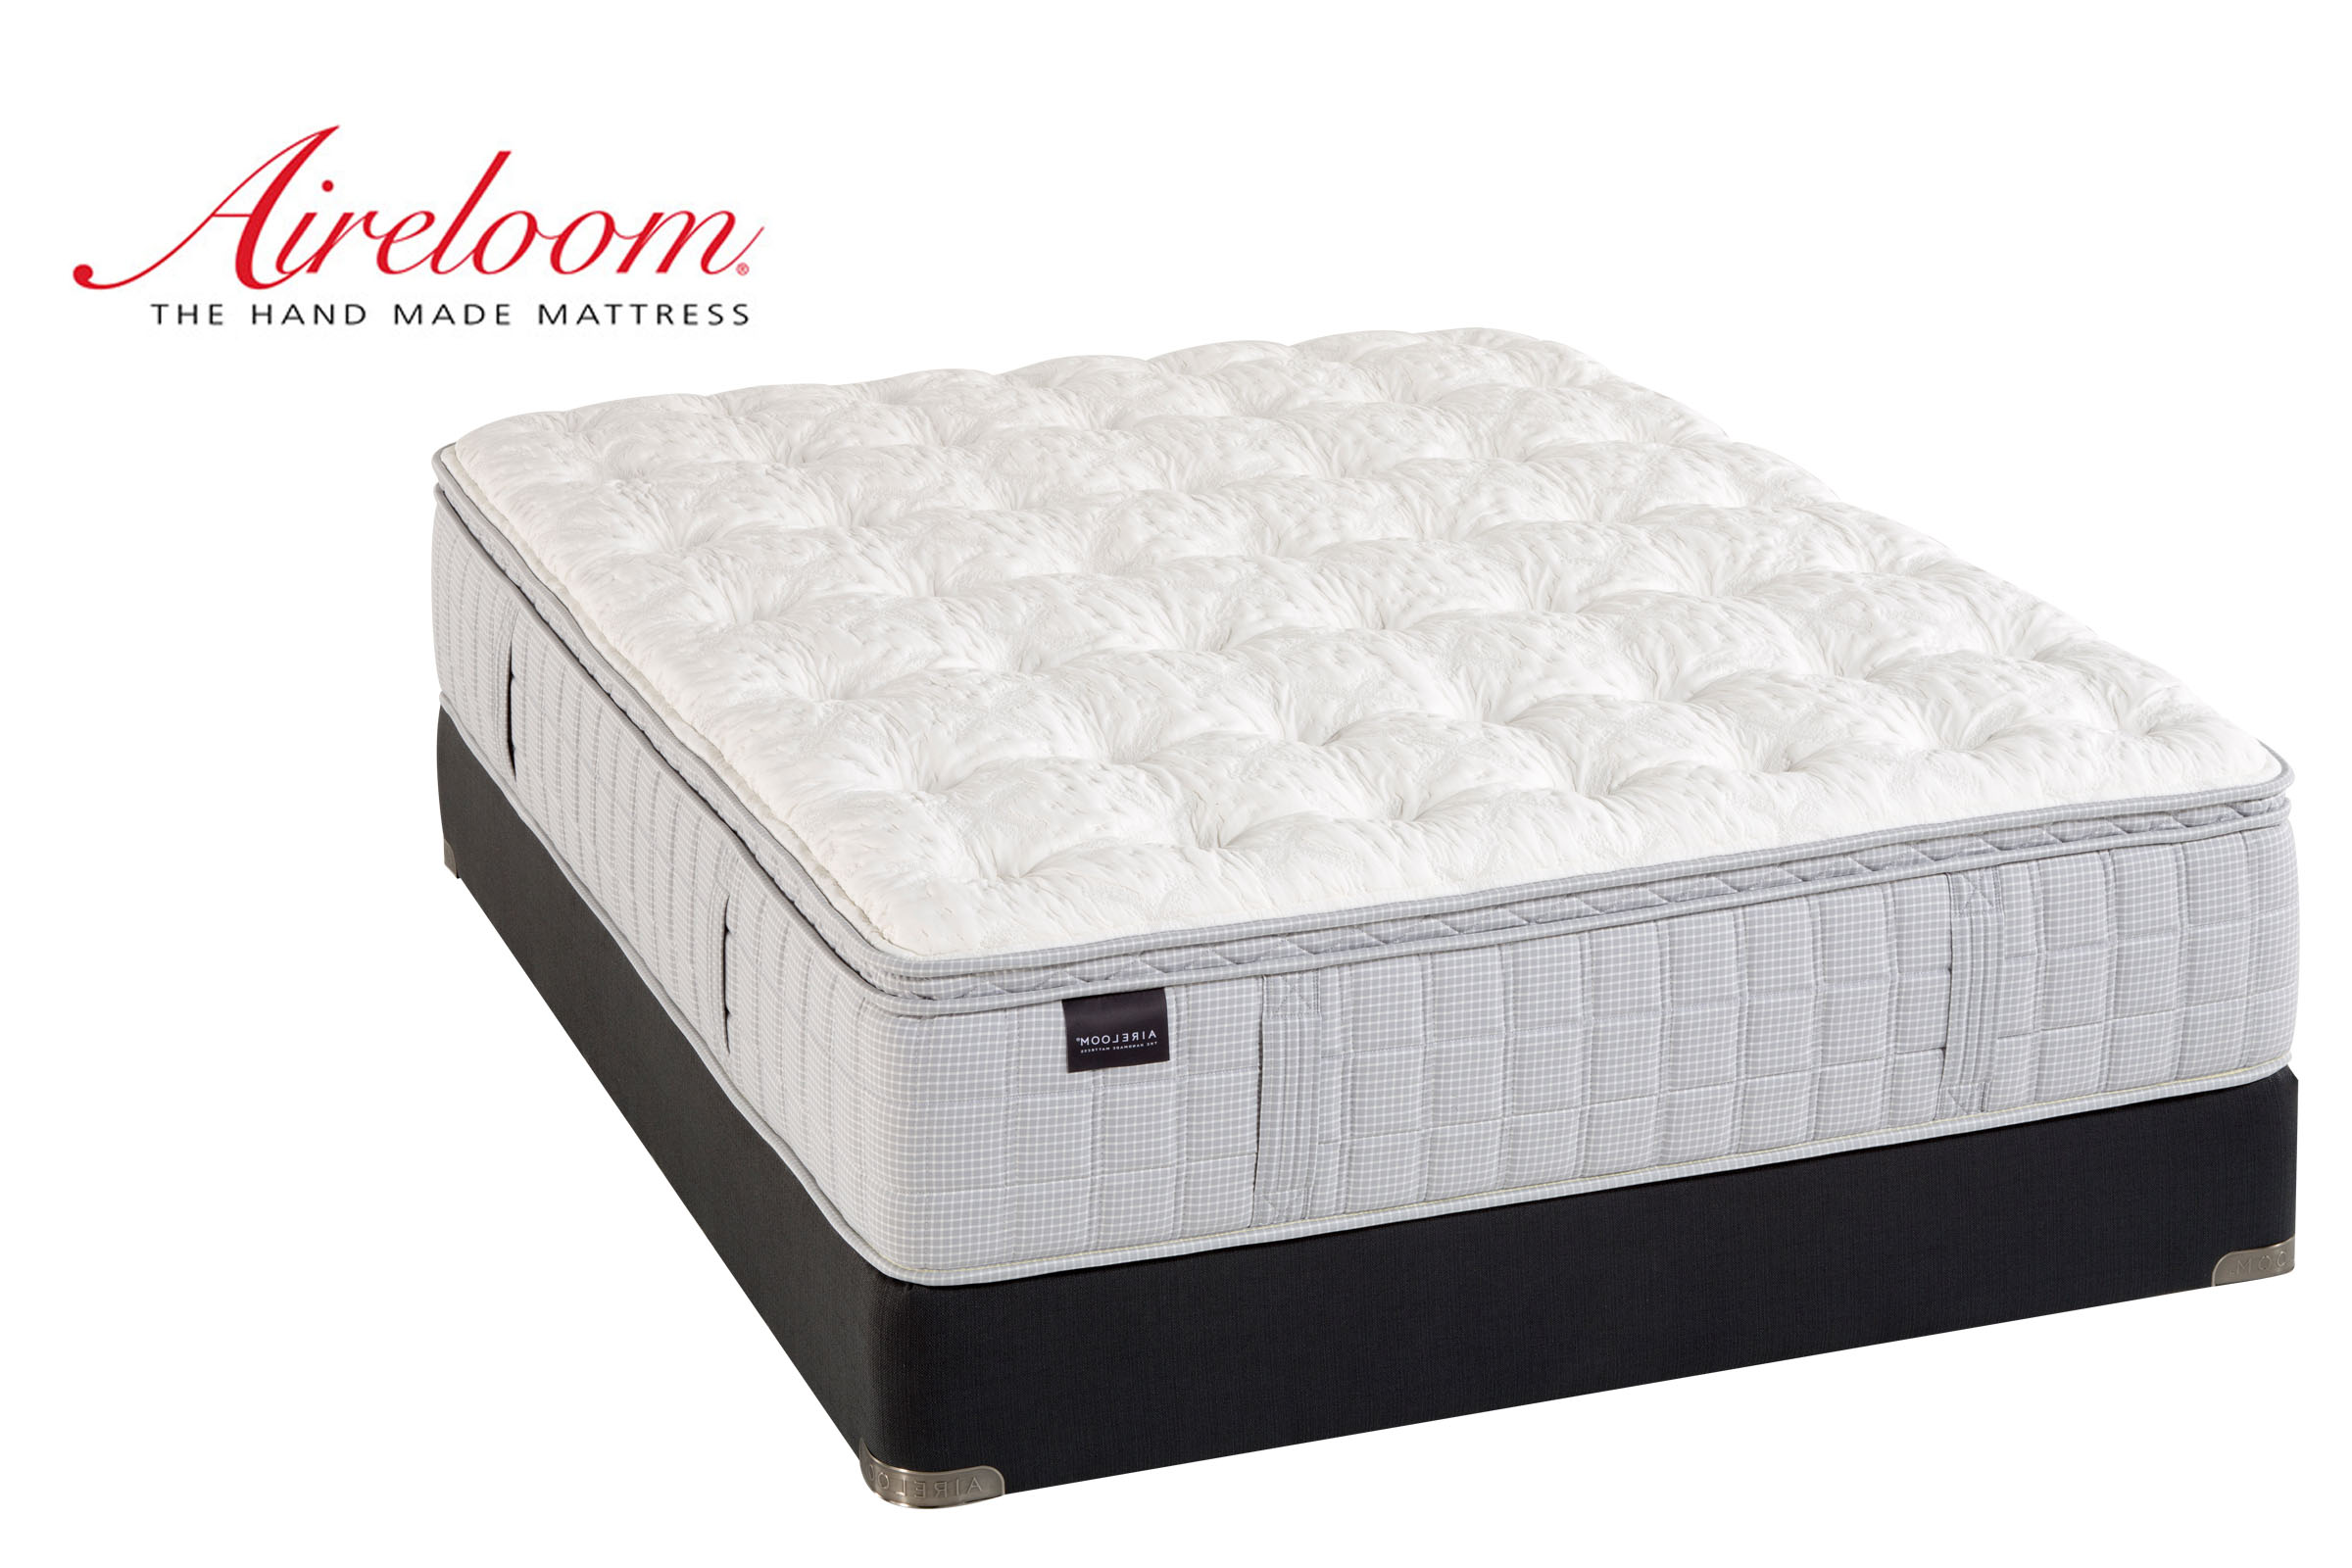 Mattress Steals with FREE Box Spring FREE LED TV & FREE Same Day